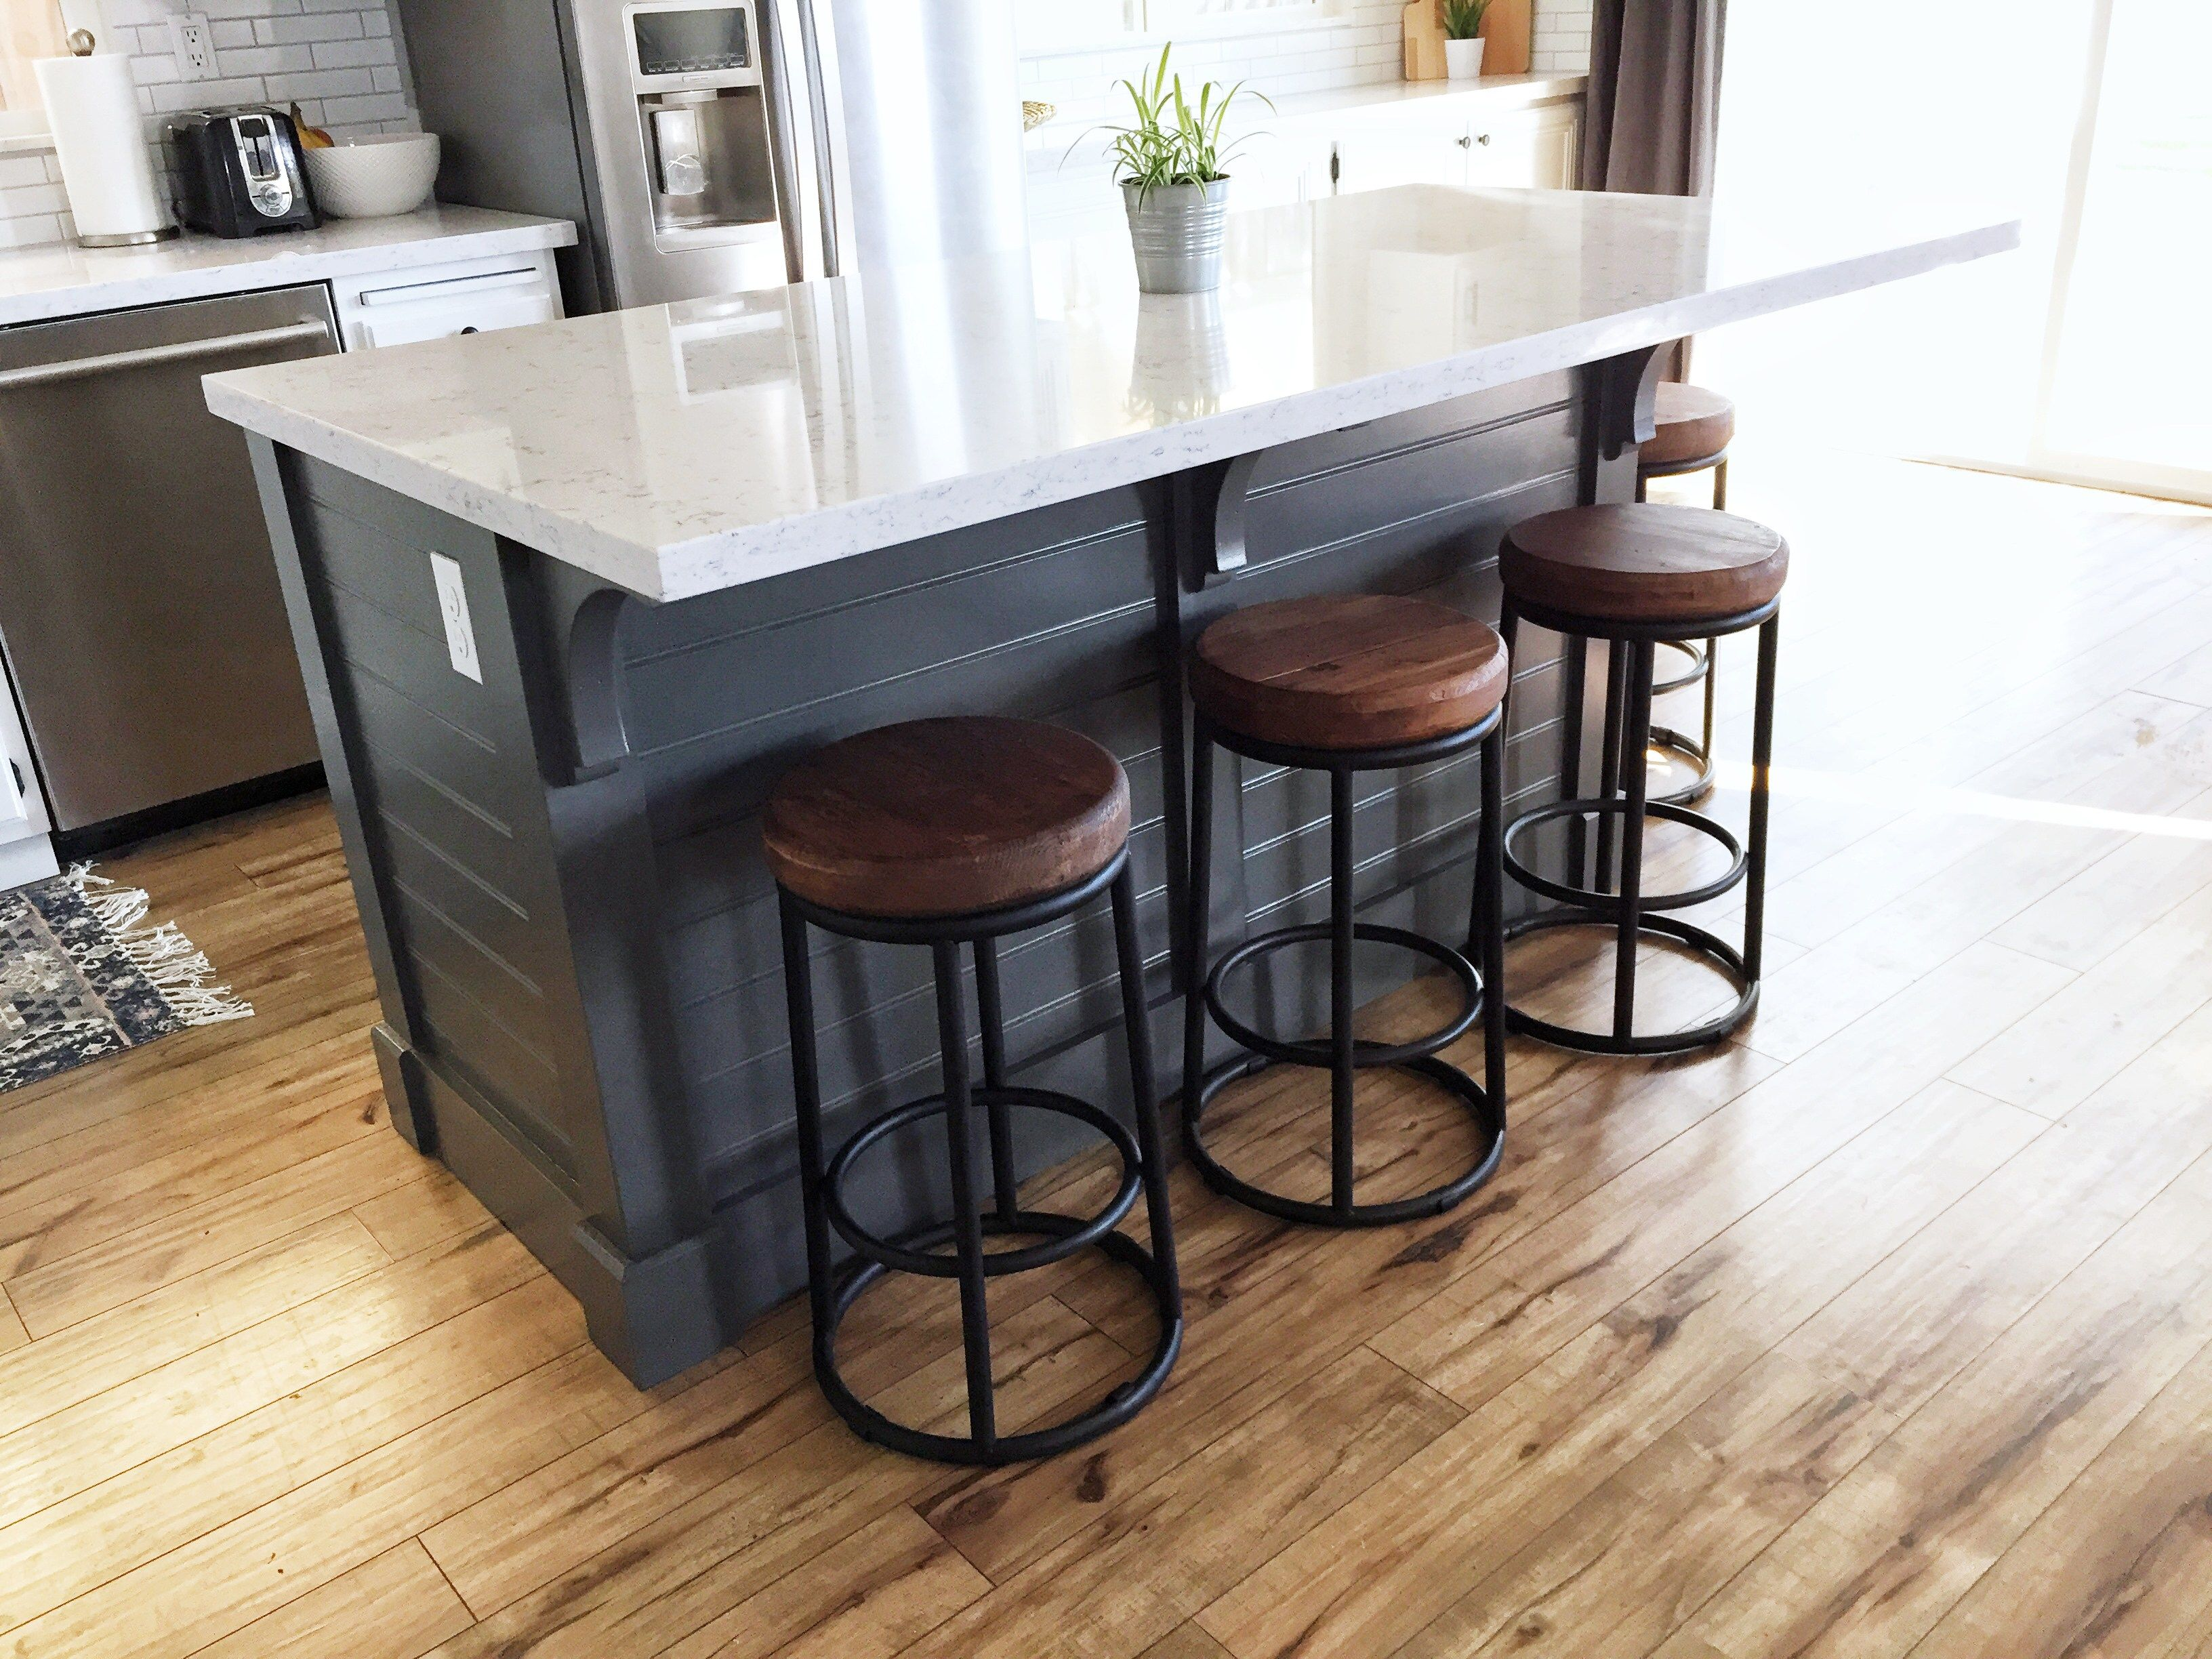 Best 25+ Diy kitchen island ideas on Pinterest | Kitchen island to ...